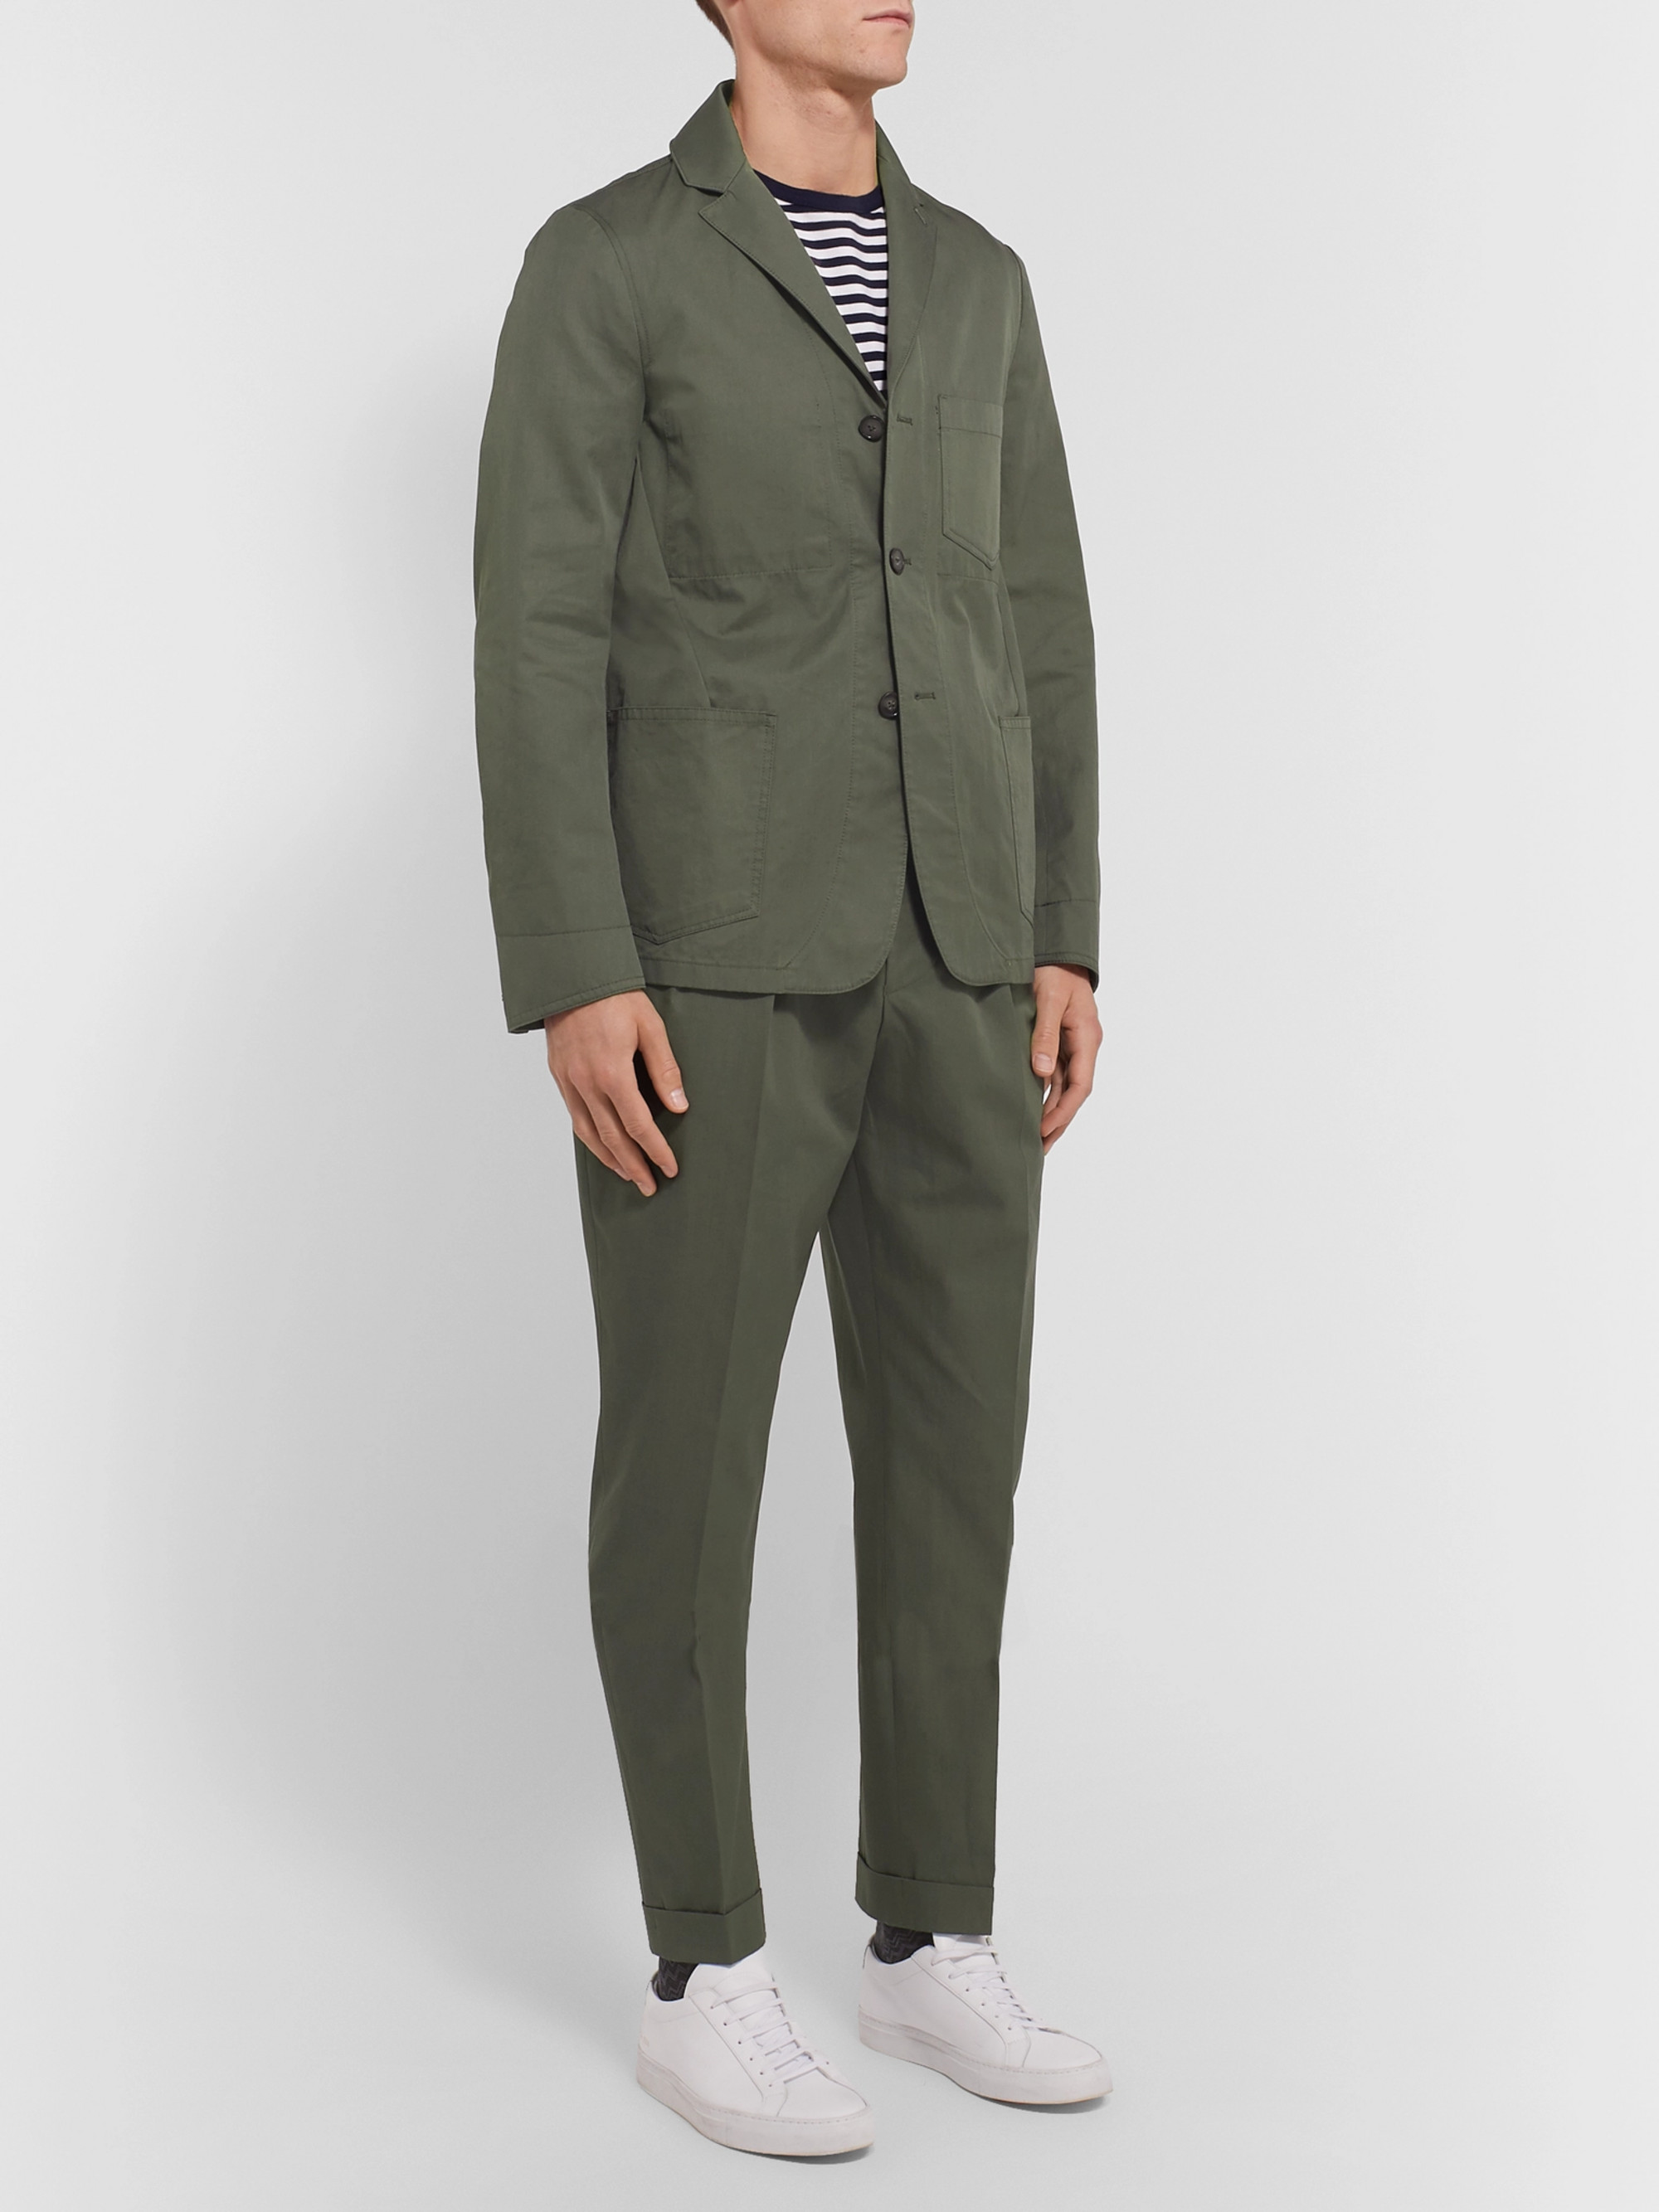 Officine Generale Olive Unstructured Washed Cotton-Twill Suit Jacket